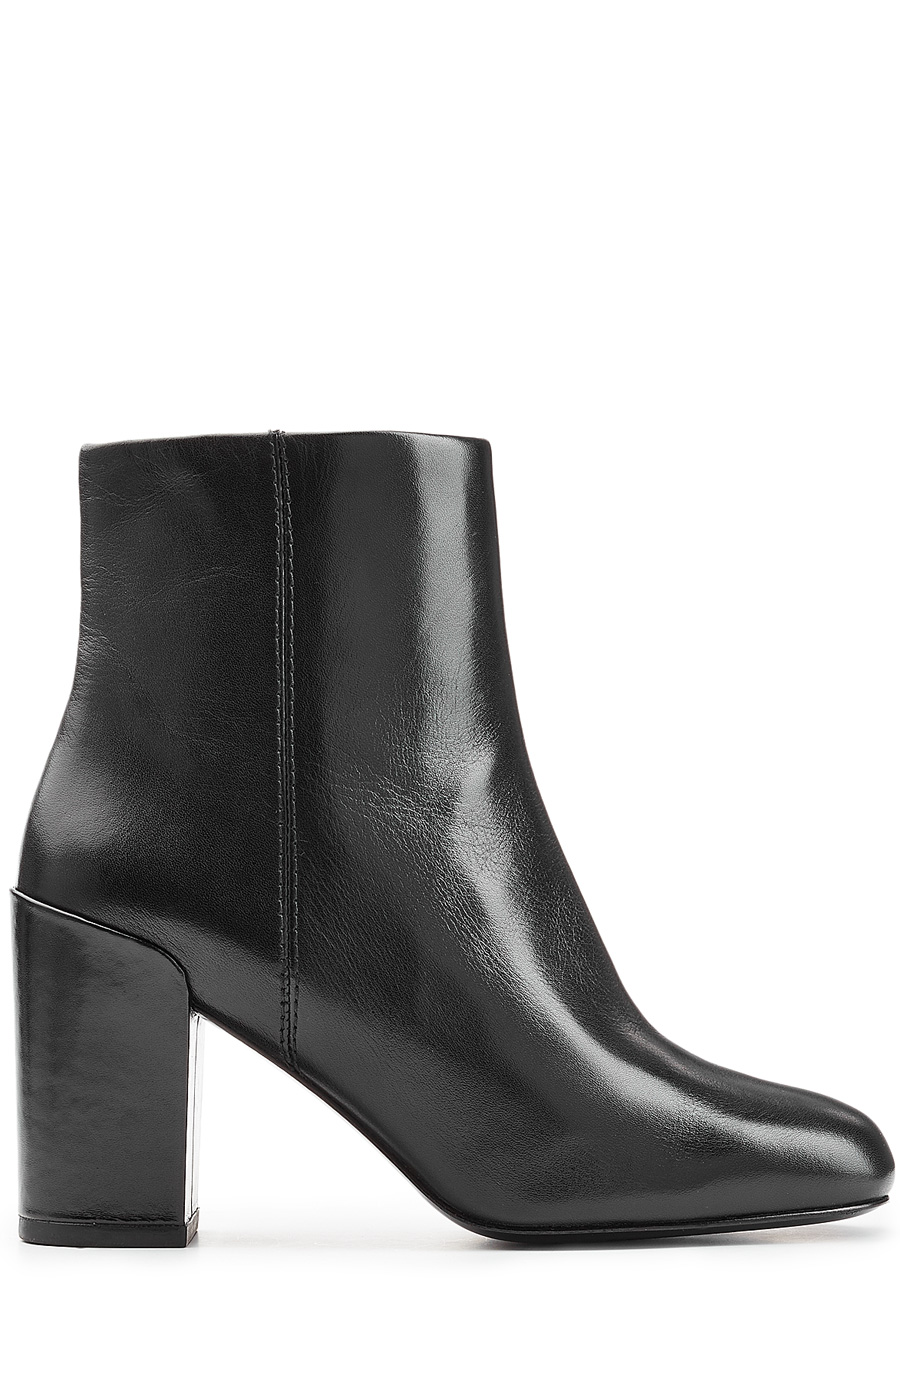 Alexander Wang Hana Ankle Boots Reliable Cheap Online From China Extremely Pictures Cheap Price wDqwHO2a